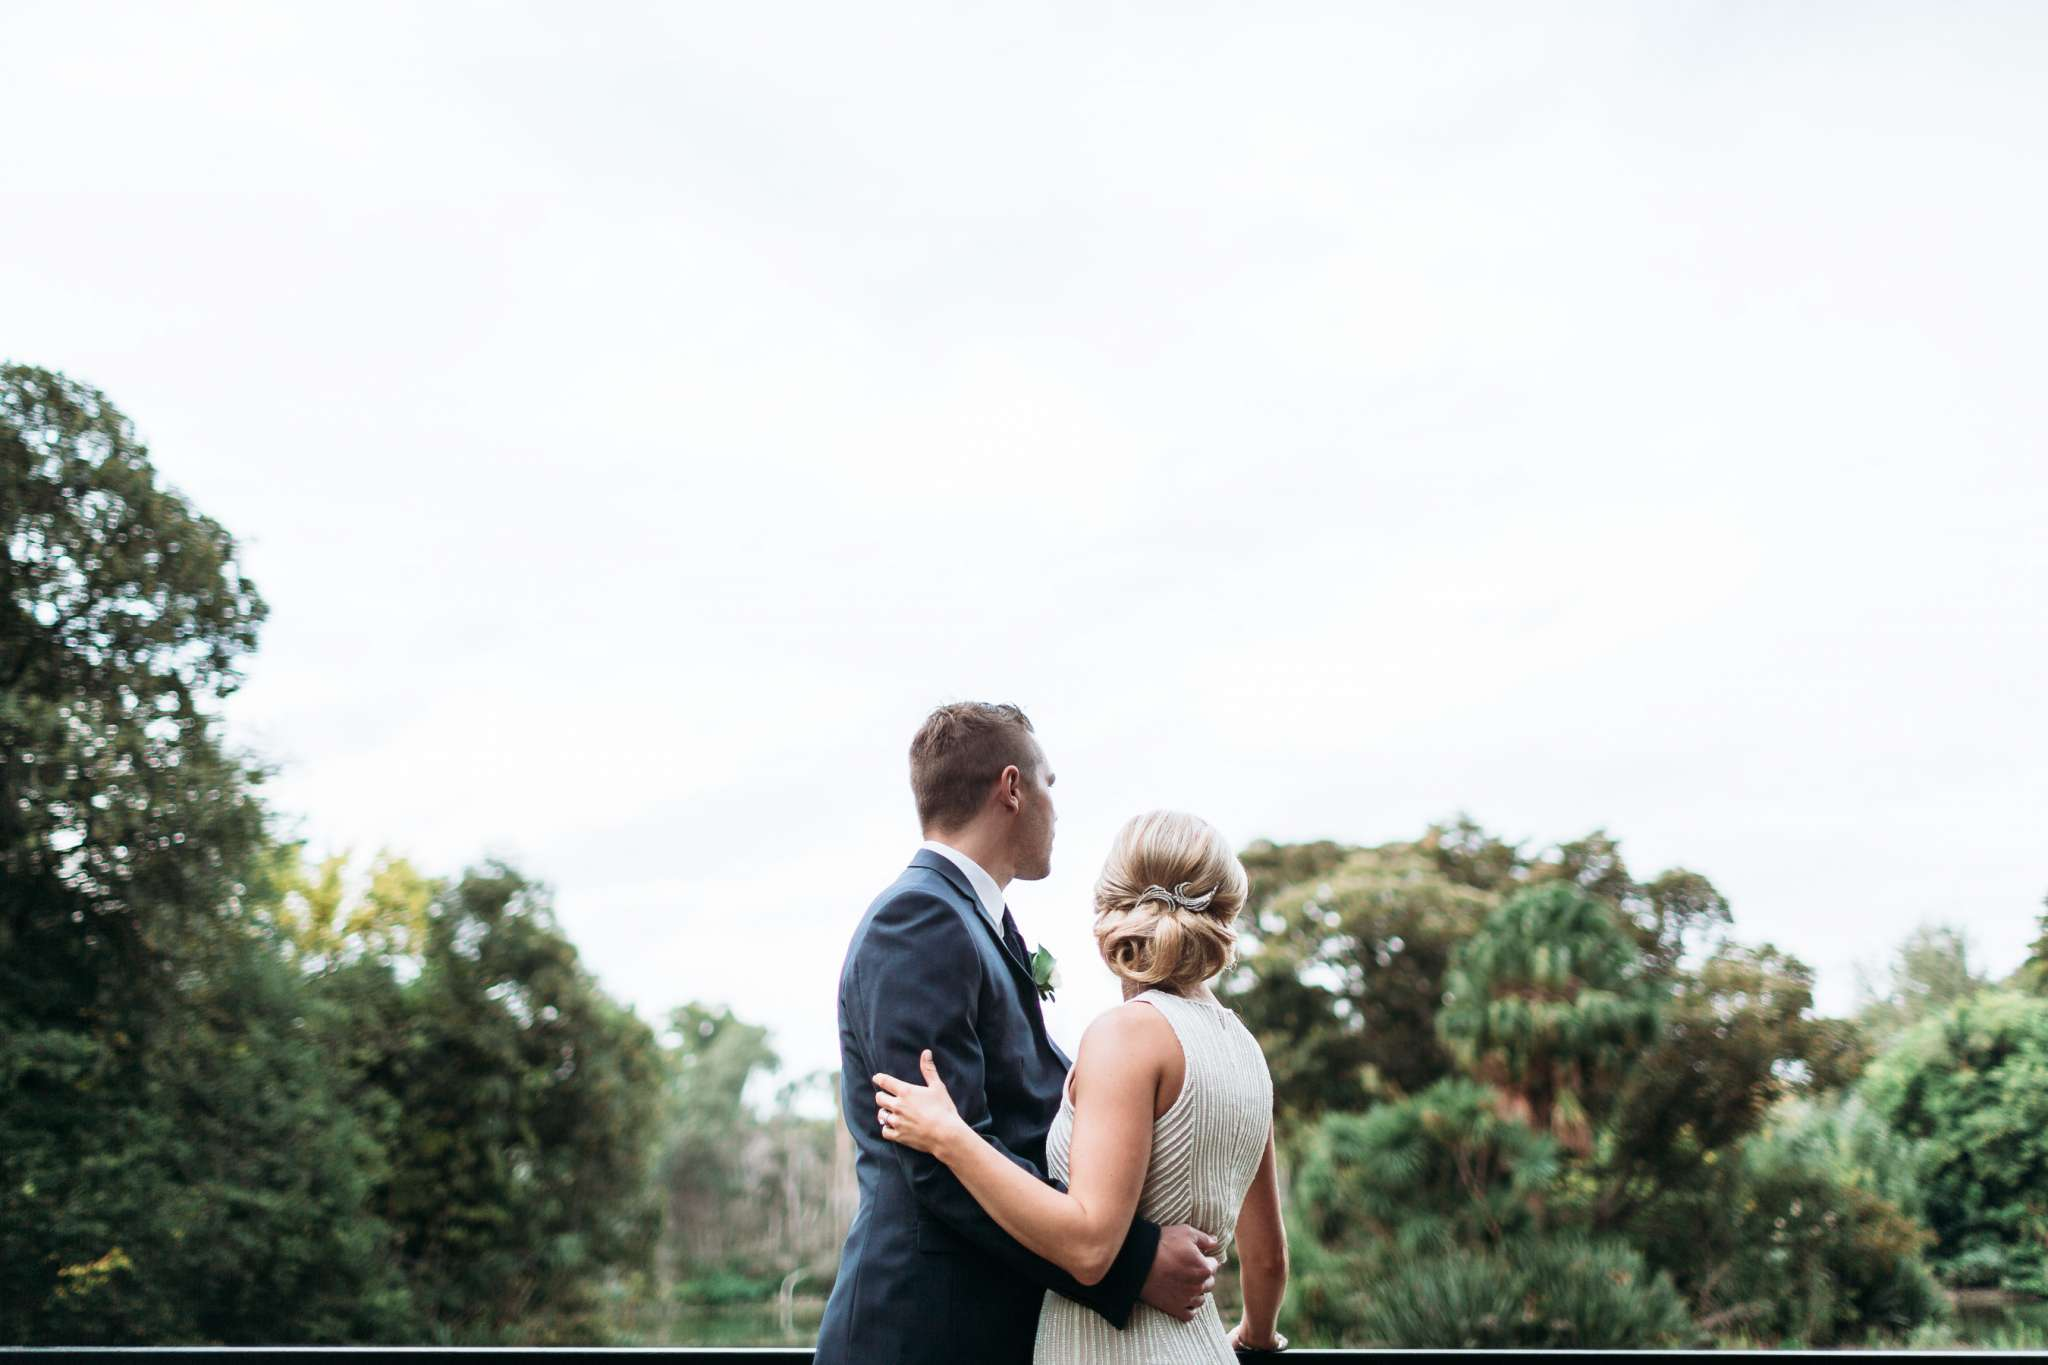 Wedding Photography Melbourne - Max & Megan 265